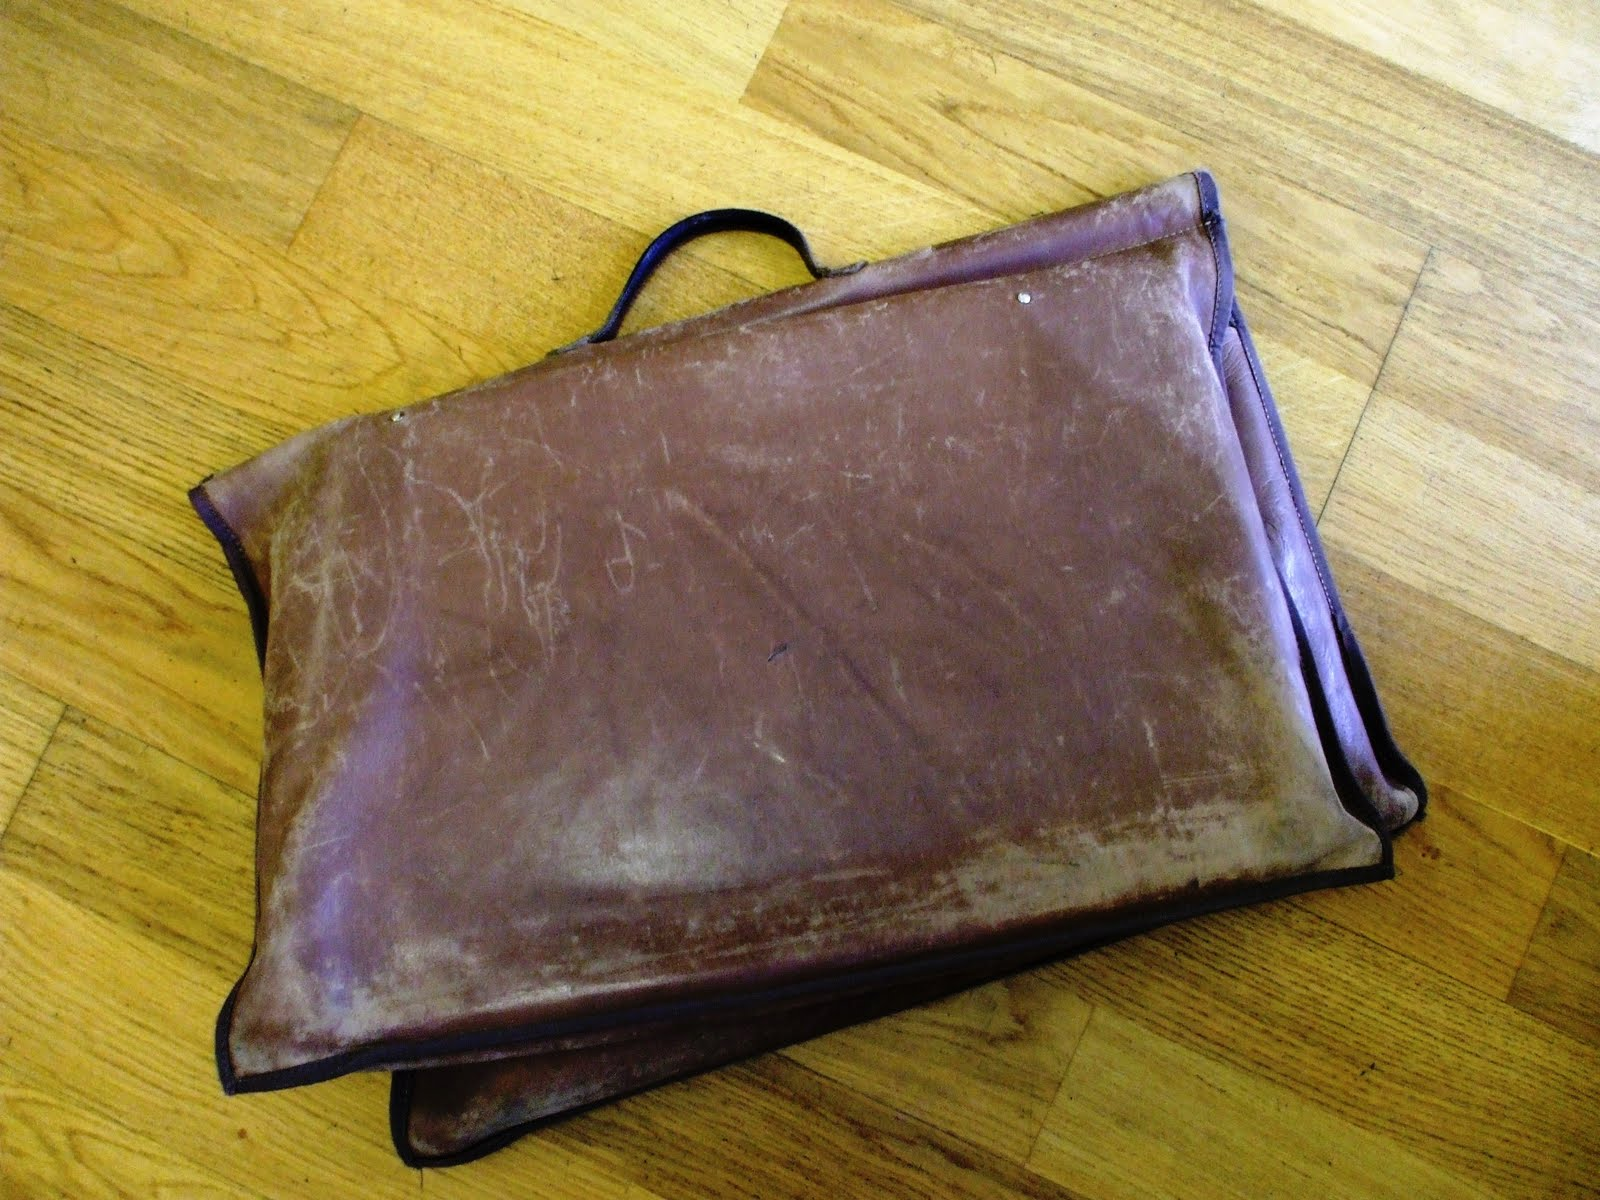 Justin's Amazing World At Fenner Paper: My old bag...